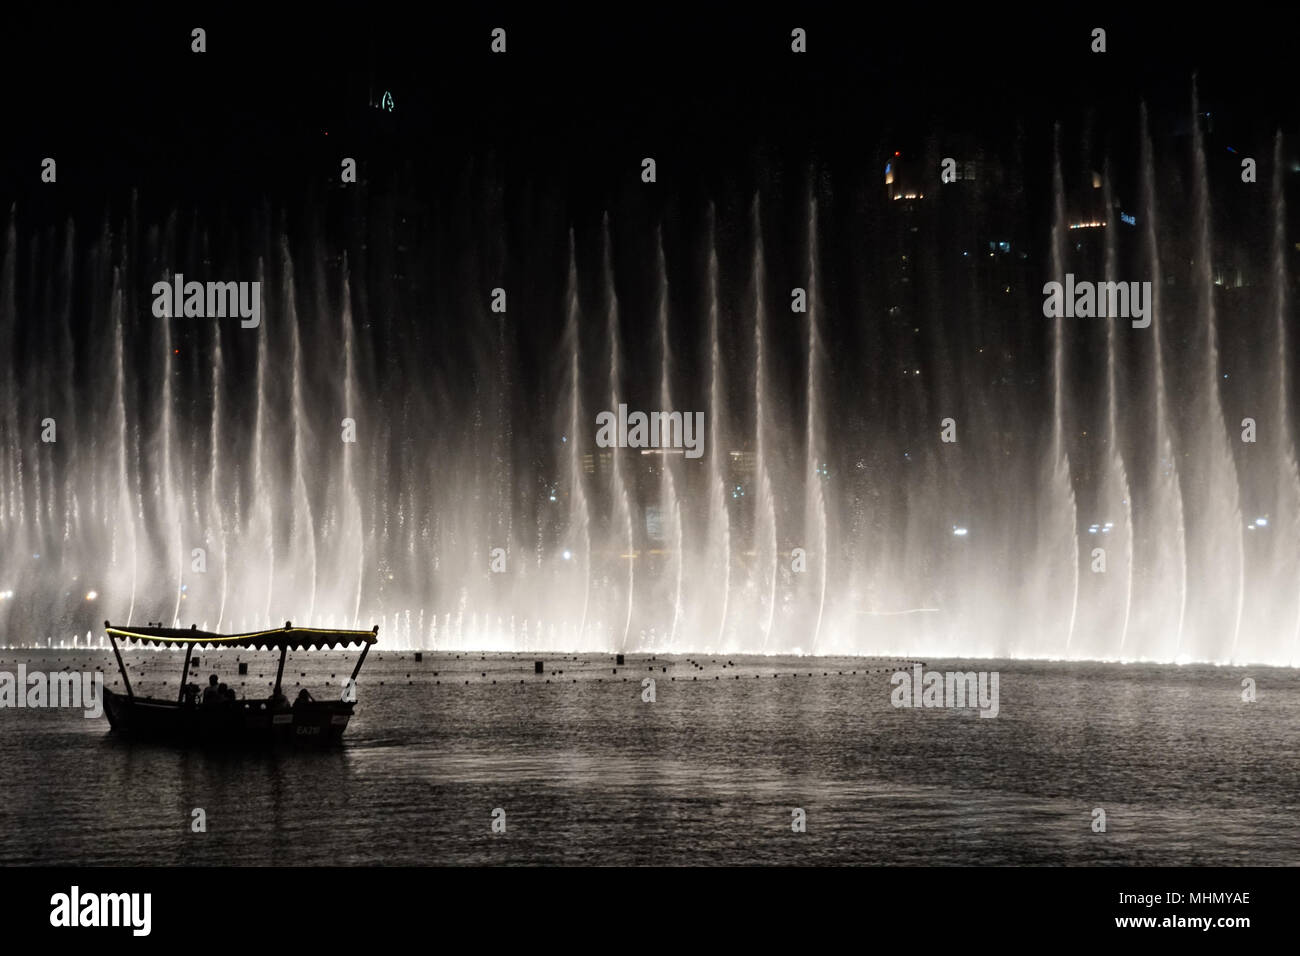 DUBAI, UAE - AUGUST 14 2017 - The show takes places every 30 minutes at the mall and is the world's second largest choreographed fountain system - Stock Image